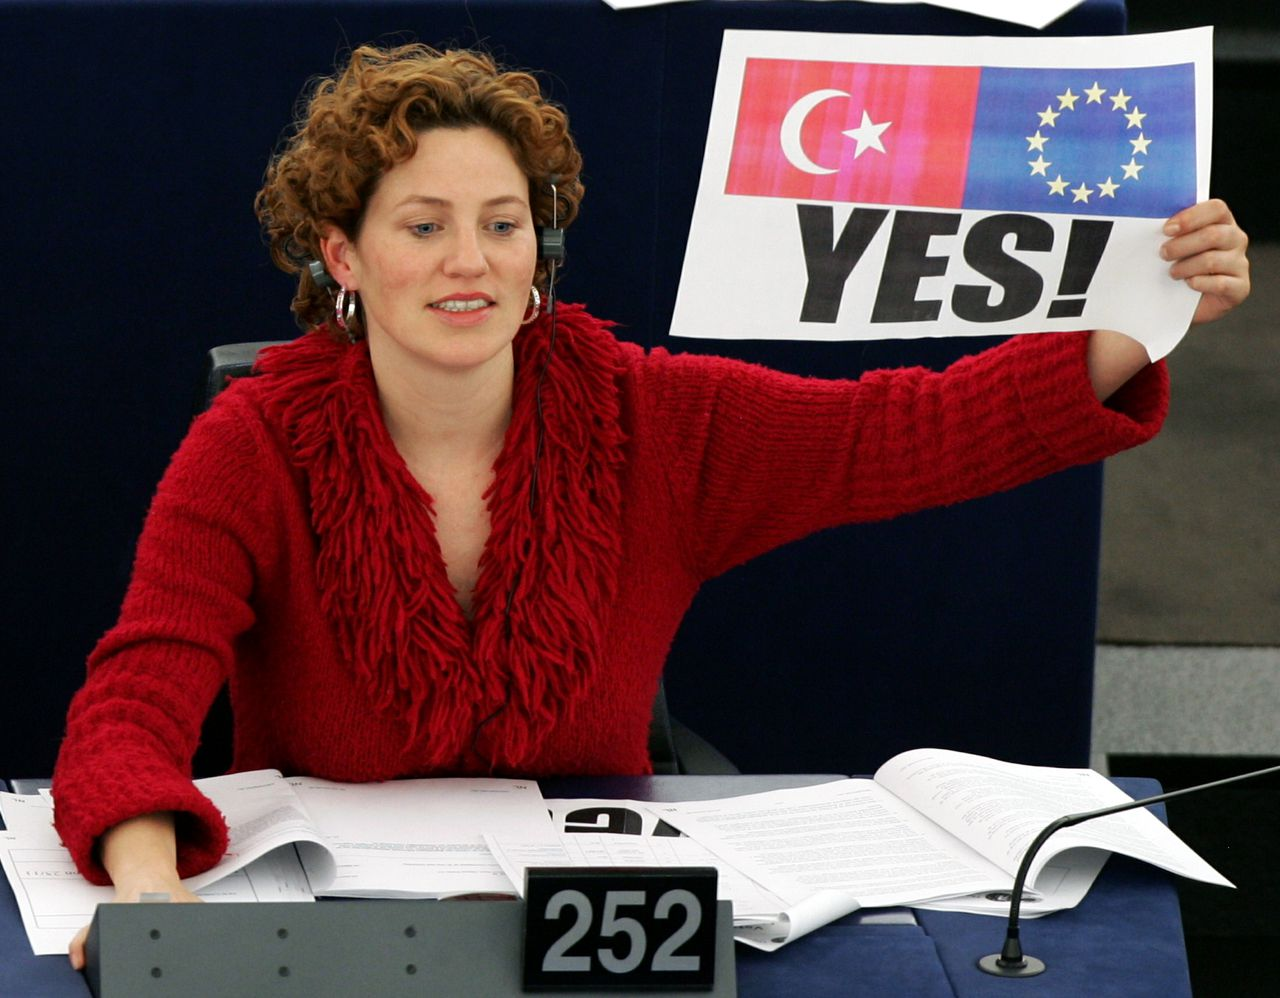 Kathalijne Buitenweg Foto Vincent Kessler Dutch green Member of the European Parliament Kathlijne Buitenweg holds a 'yes' placard during a vote over the opening of membership talks with Turkey at the European Parliament in Strasbourg, December 15, 2004. Turkey was on course on Wednesday to get a date to start open-ended negotiations on European Union membership as final elements of a compromise package came together on the eve of a landmark EU summit.